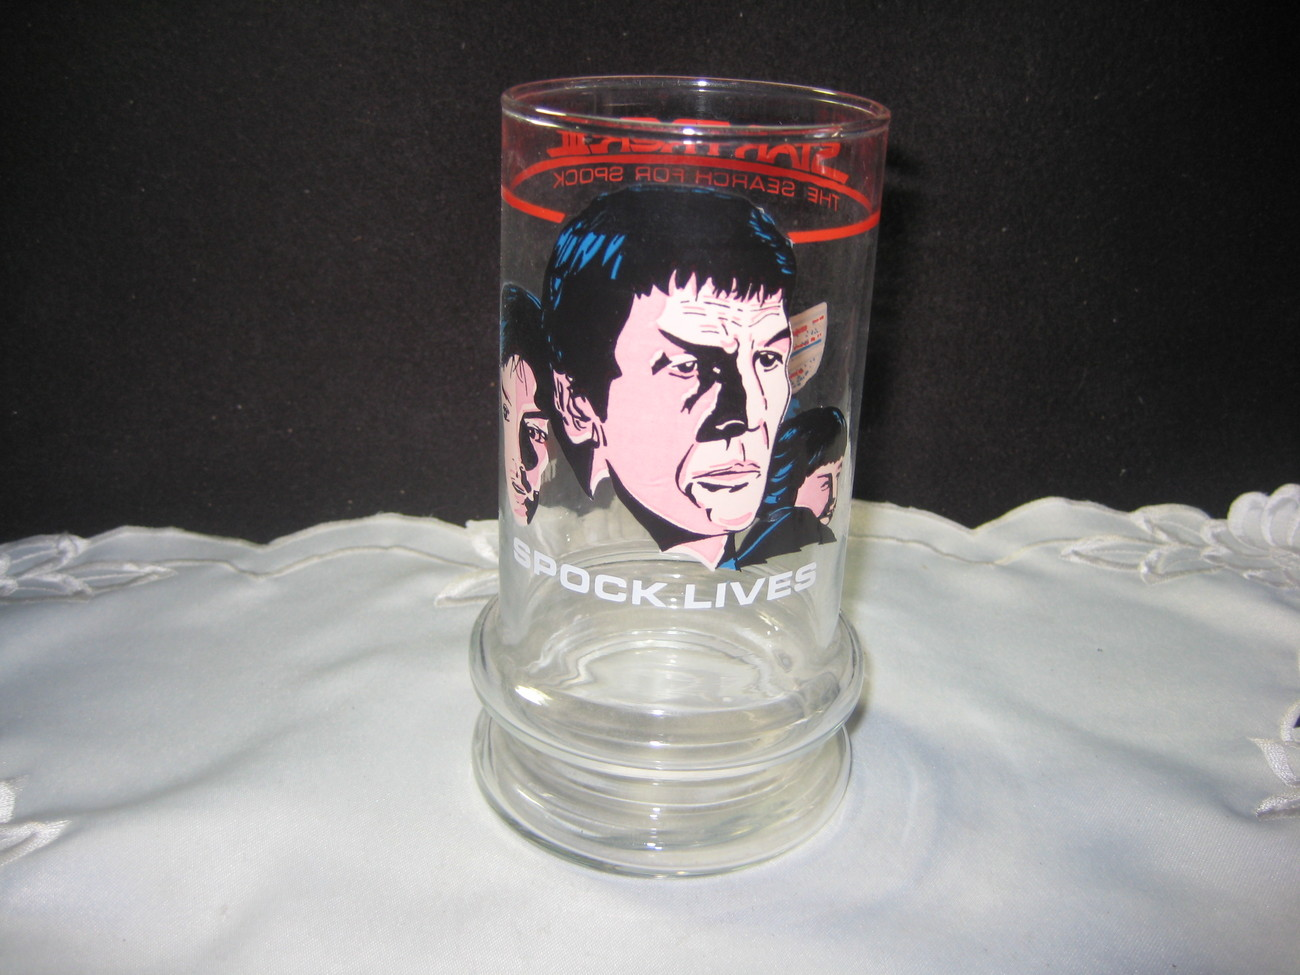 Star Trek Collector Glass Spock